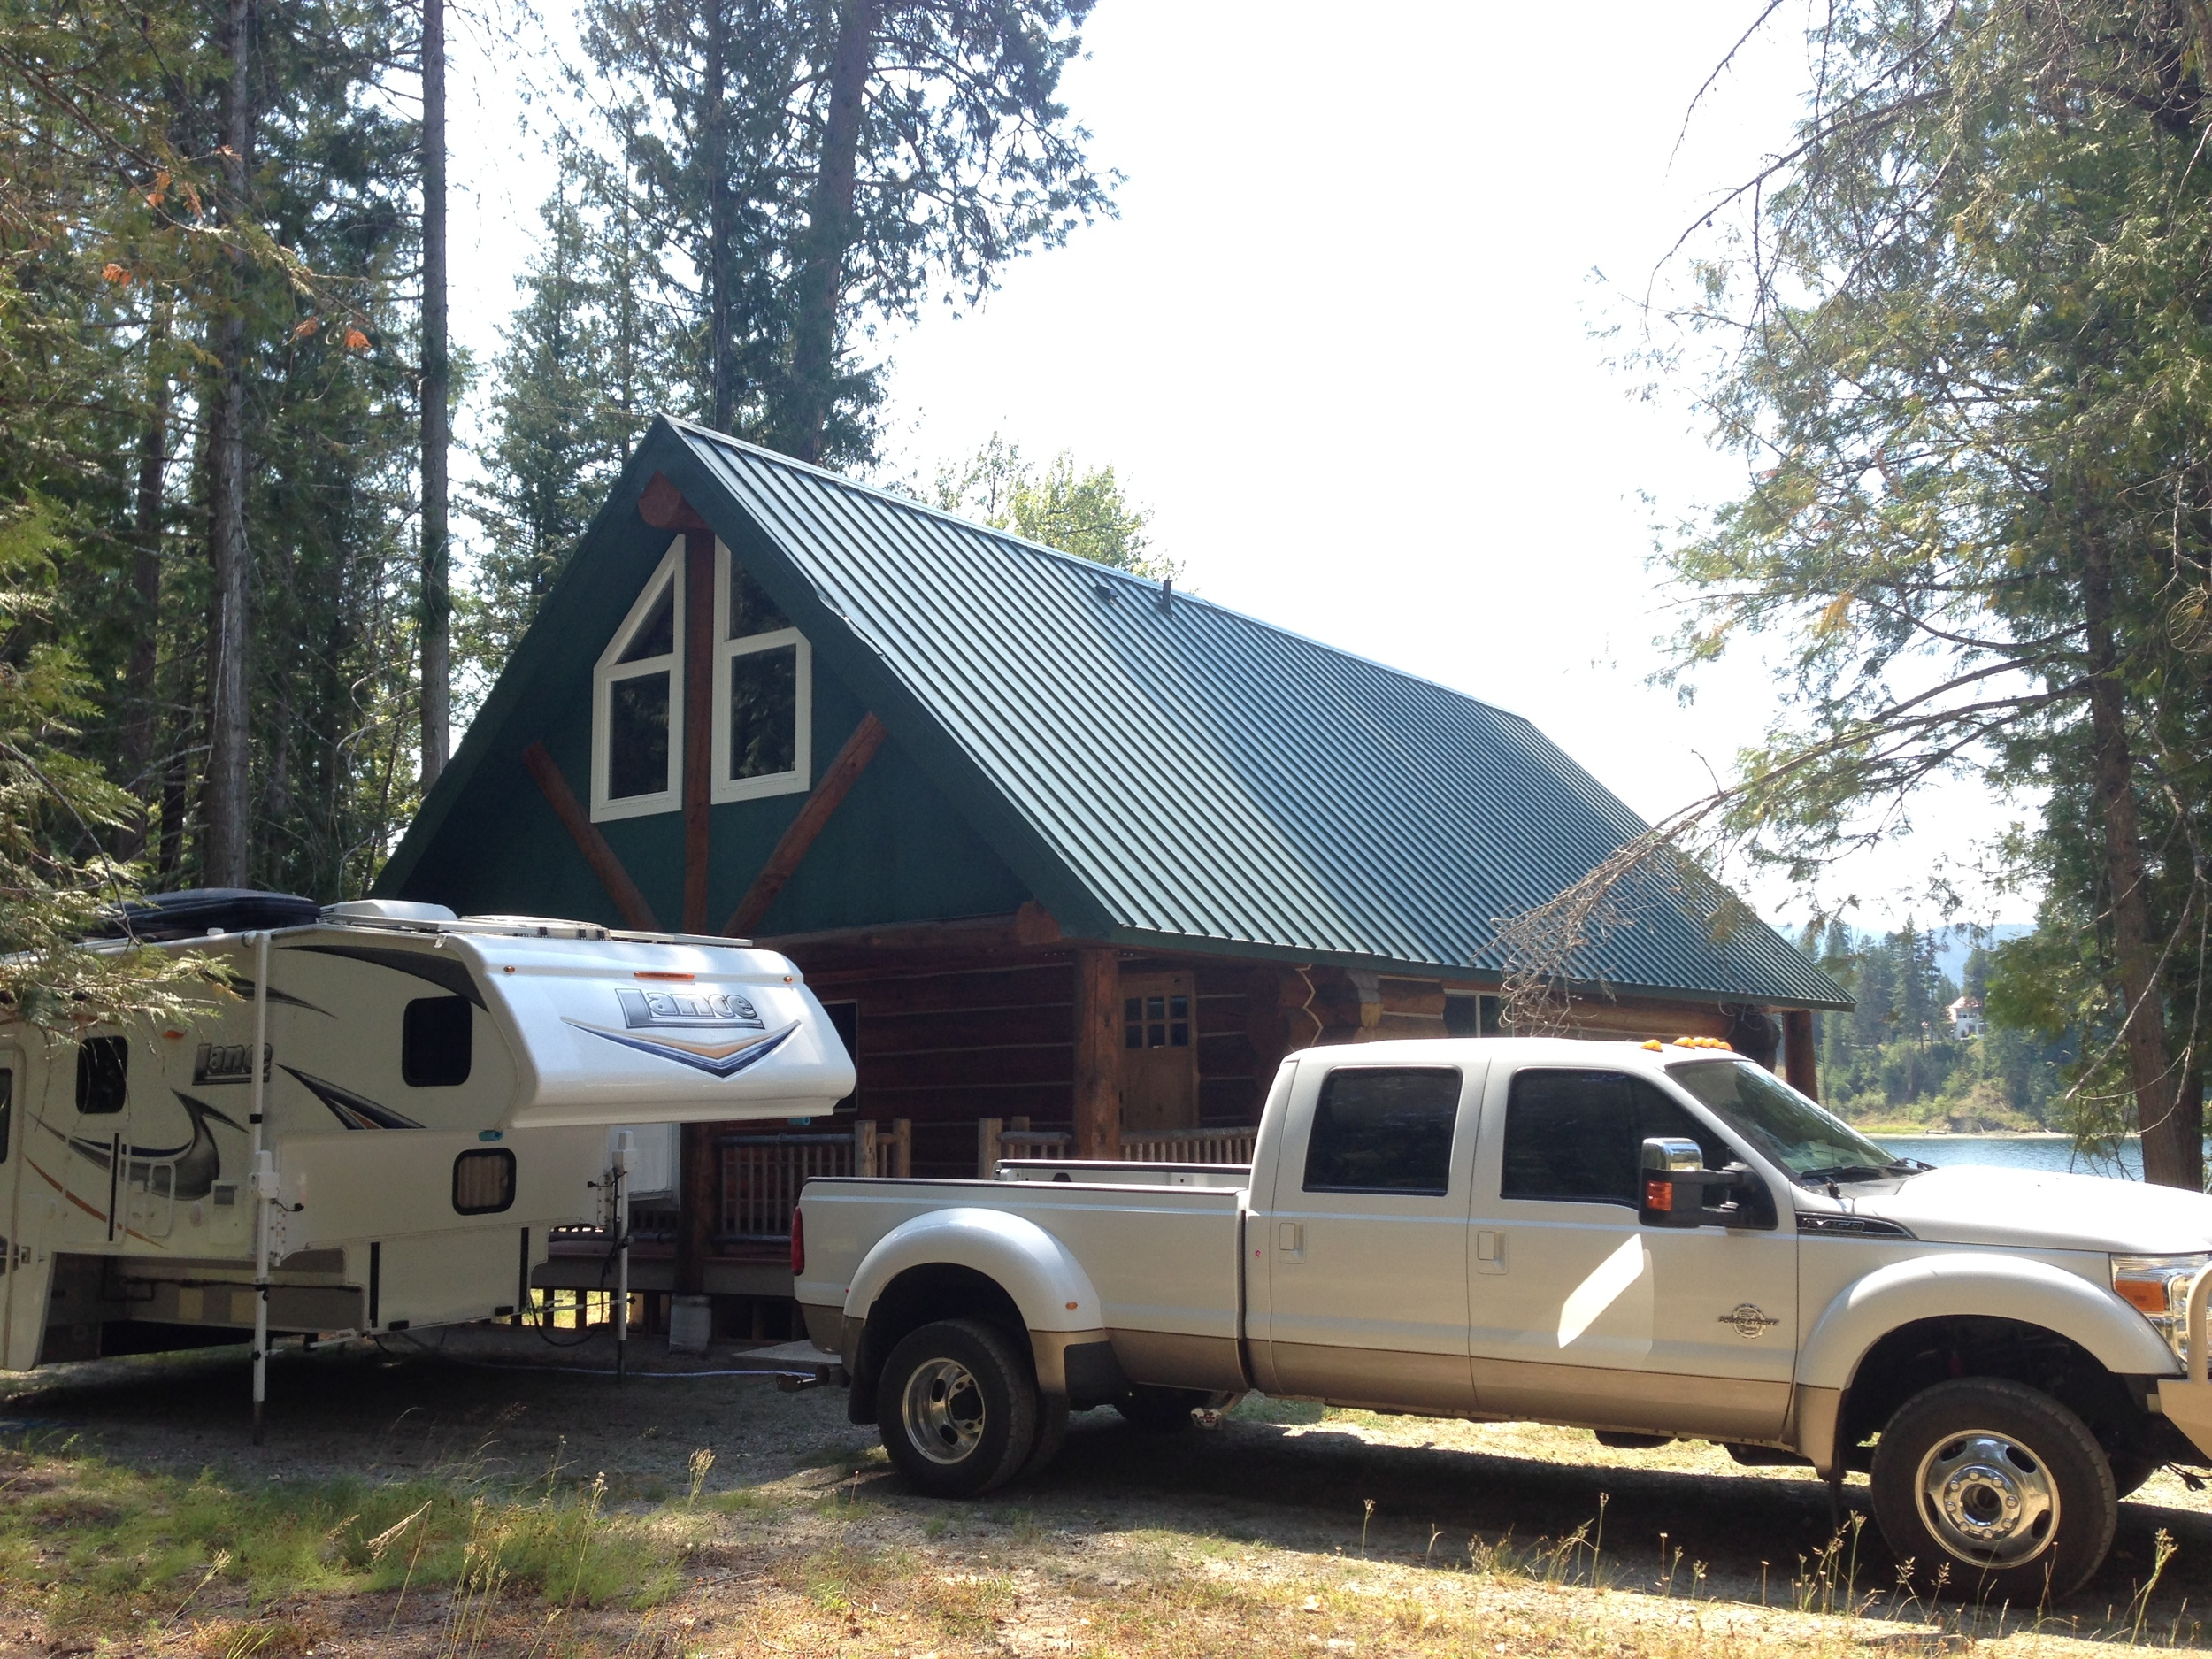 Still camping while in escrow. So close!